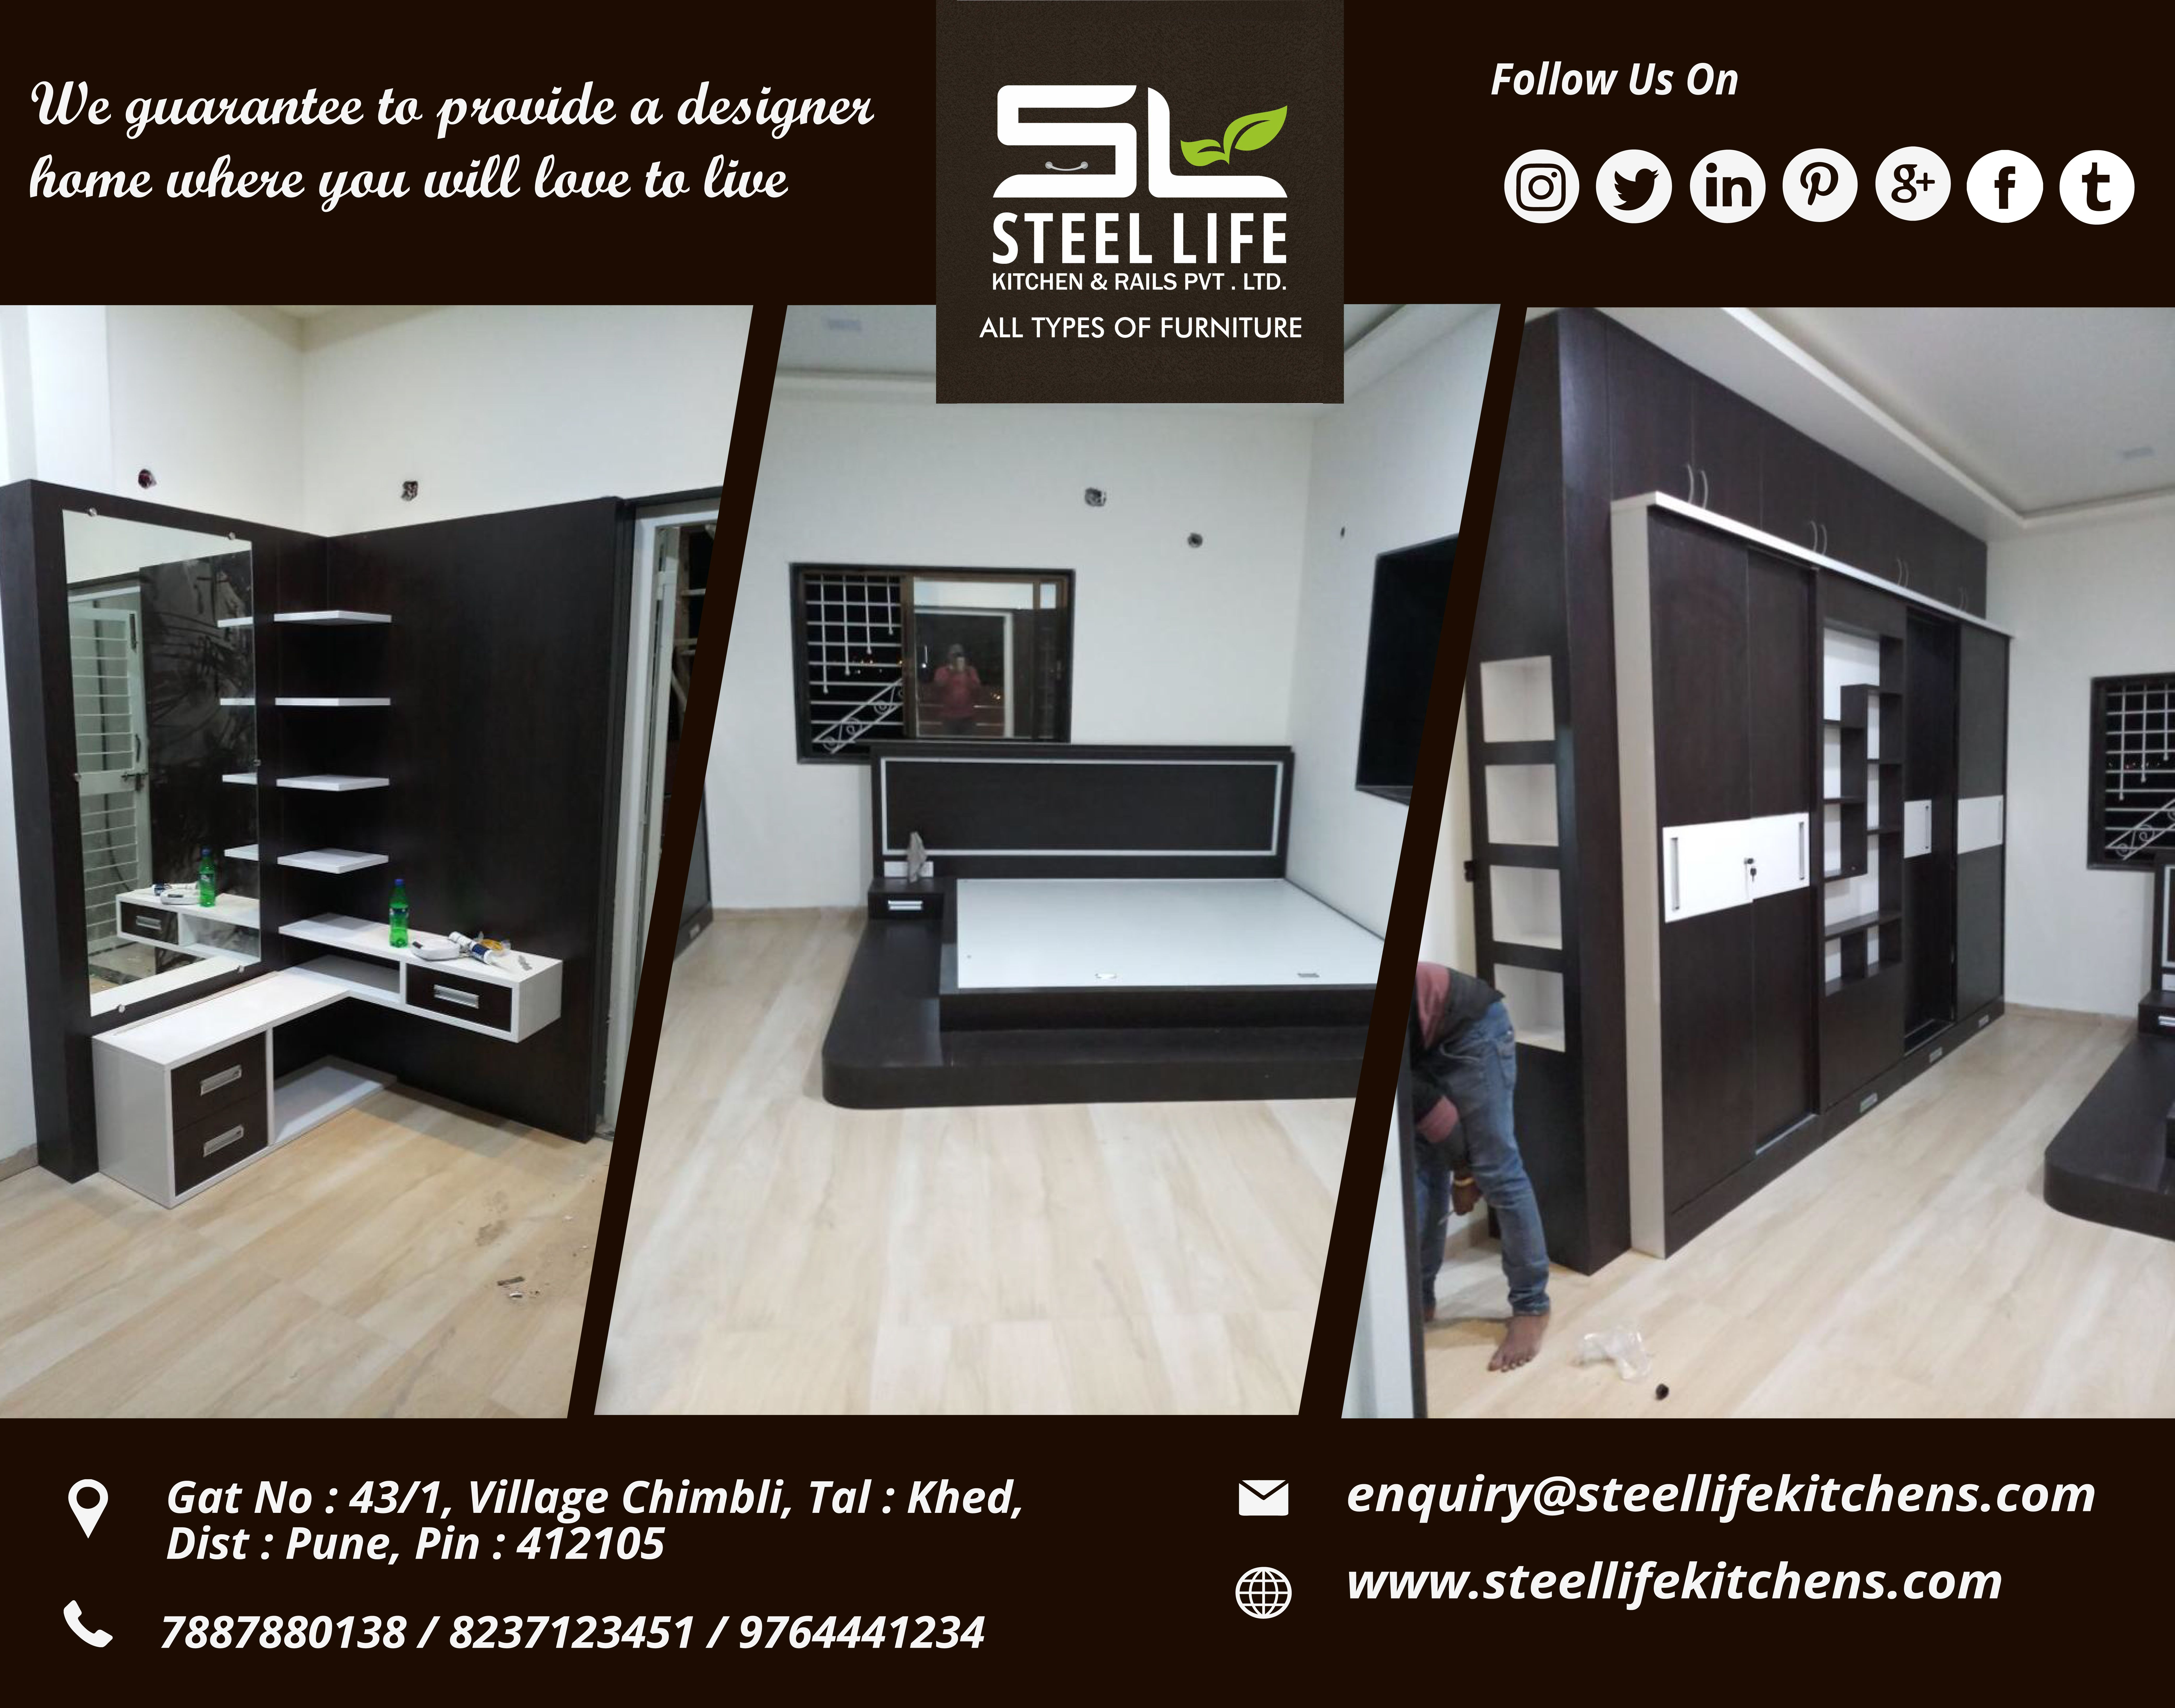 Steel Life Kitchen Rails Is A Pune Based Interior Design Firm